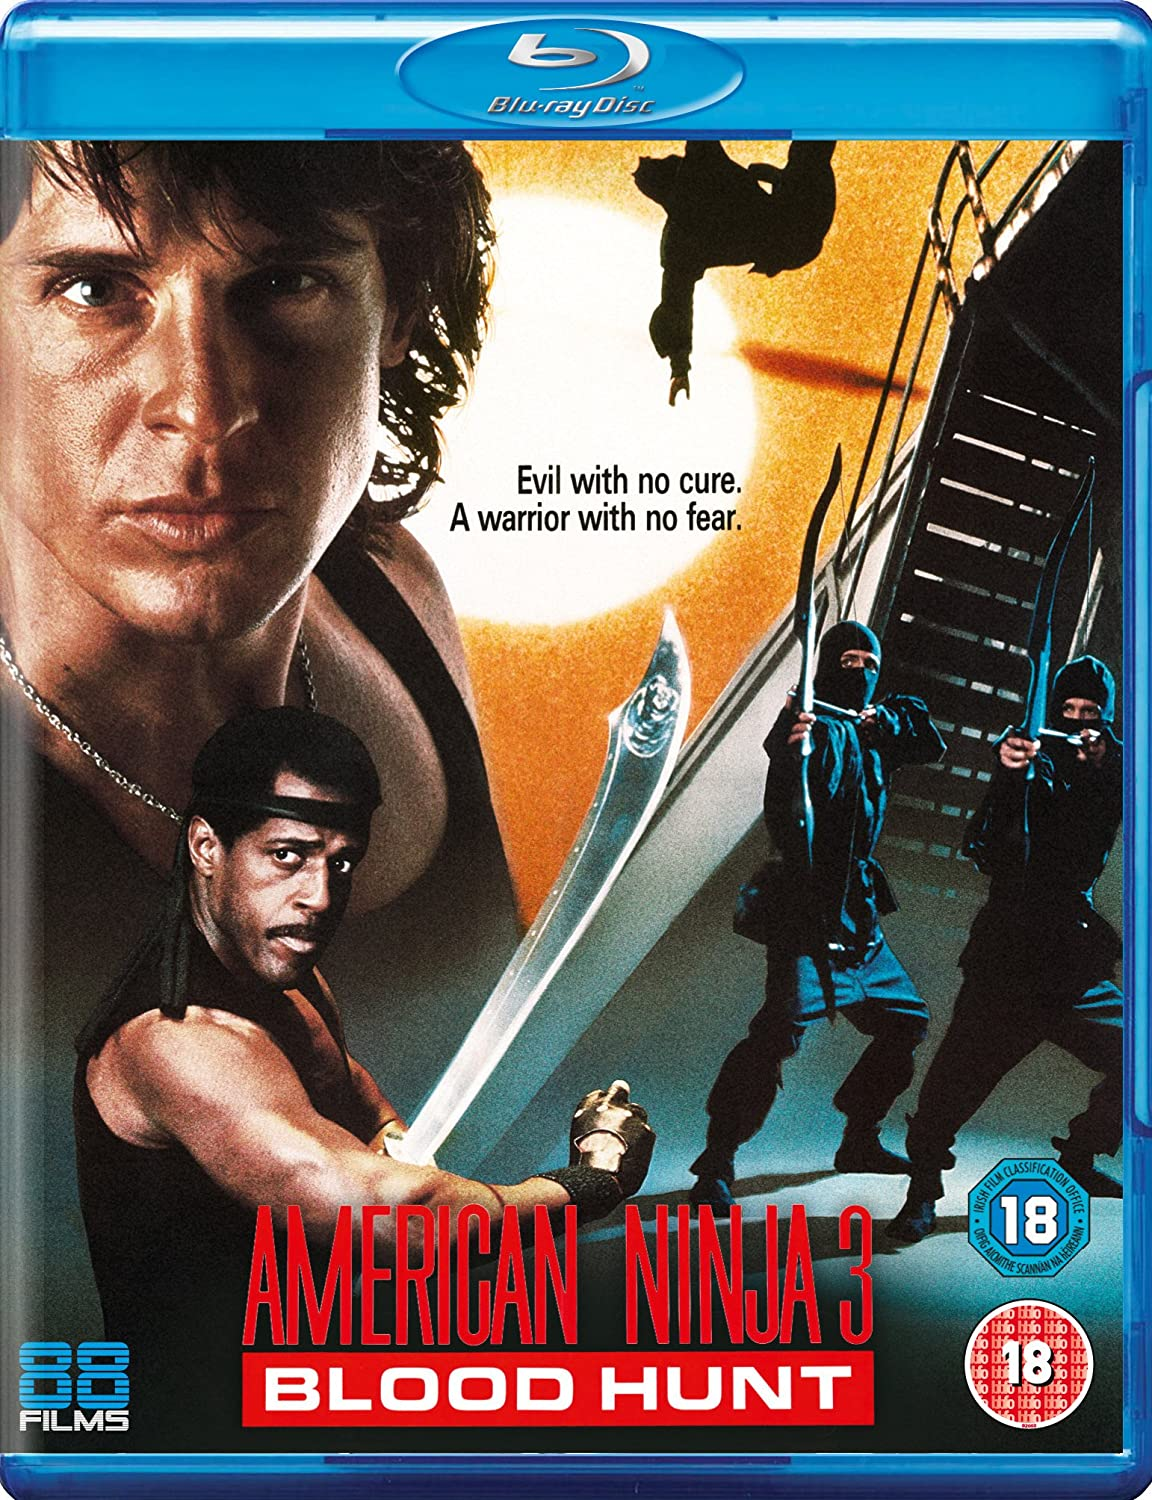 Amazon.com: American Ninja 3: Bloodhunt [Blu-ray]: Cine y TV